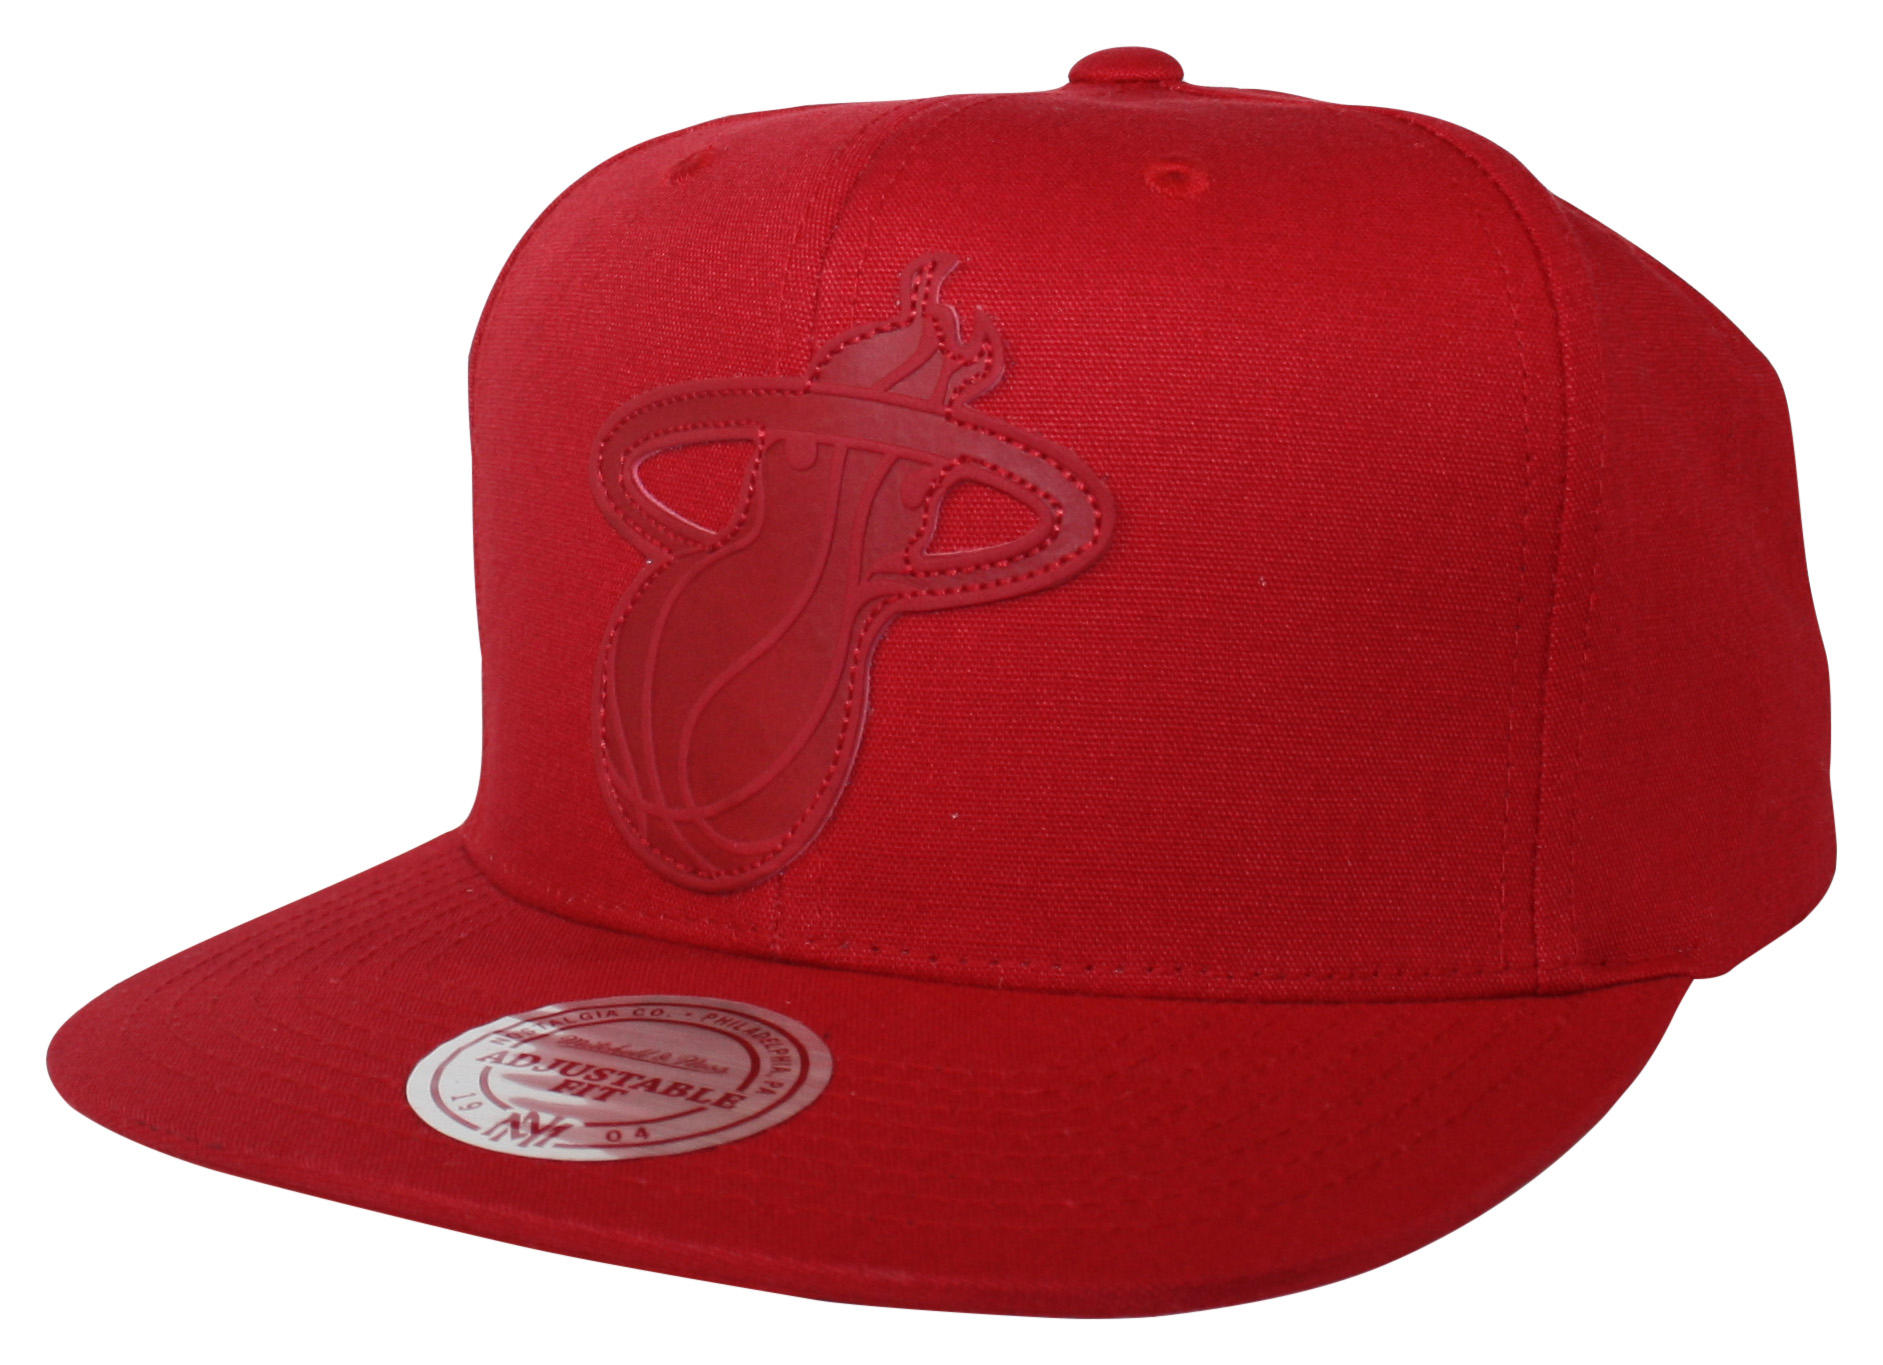 Hot Stamp Snapback Miami Heat 4c527246ba6